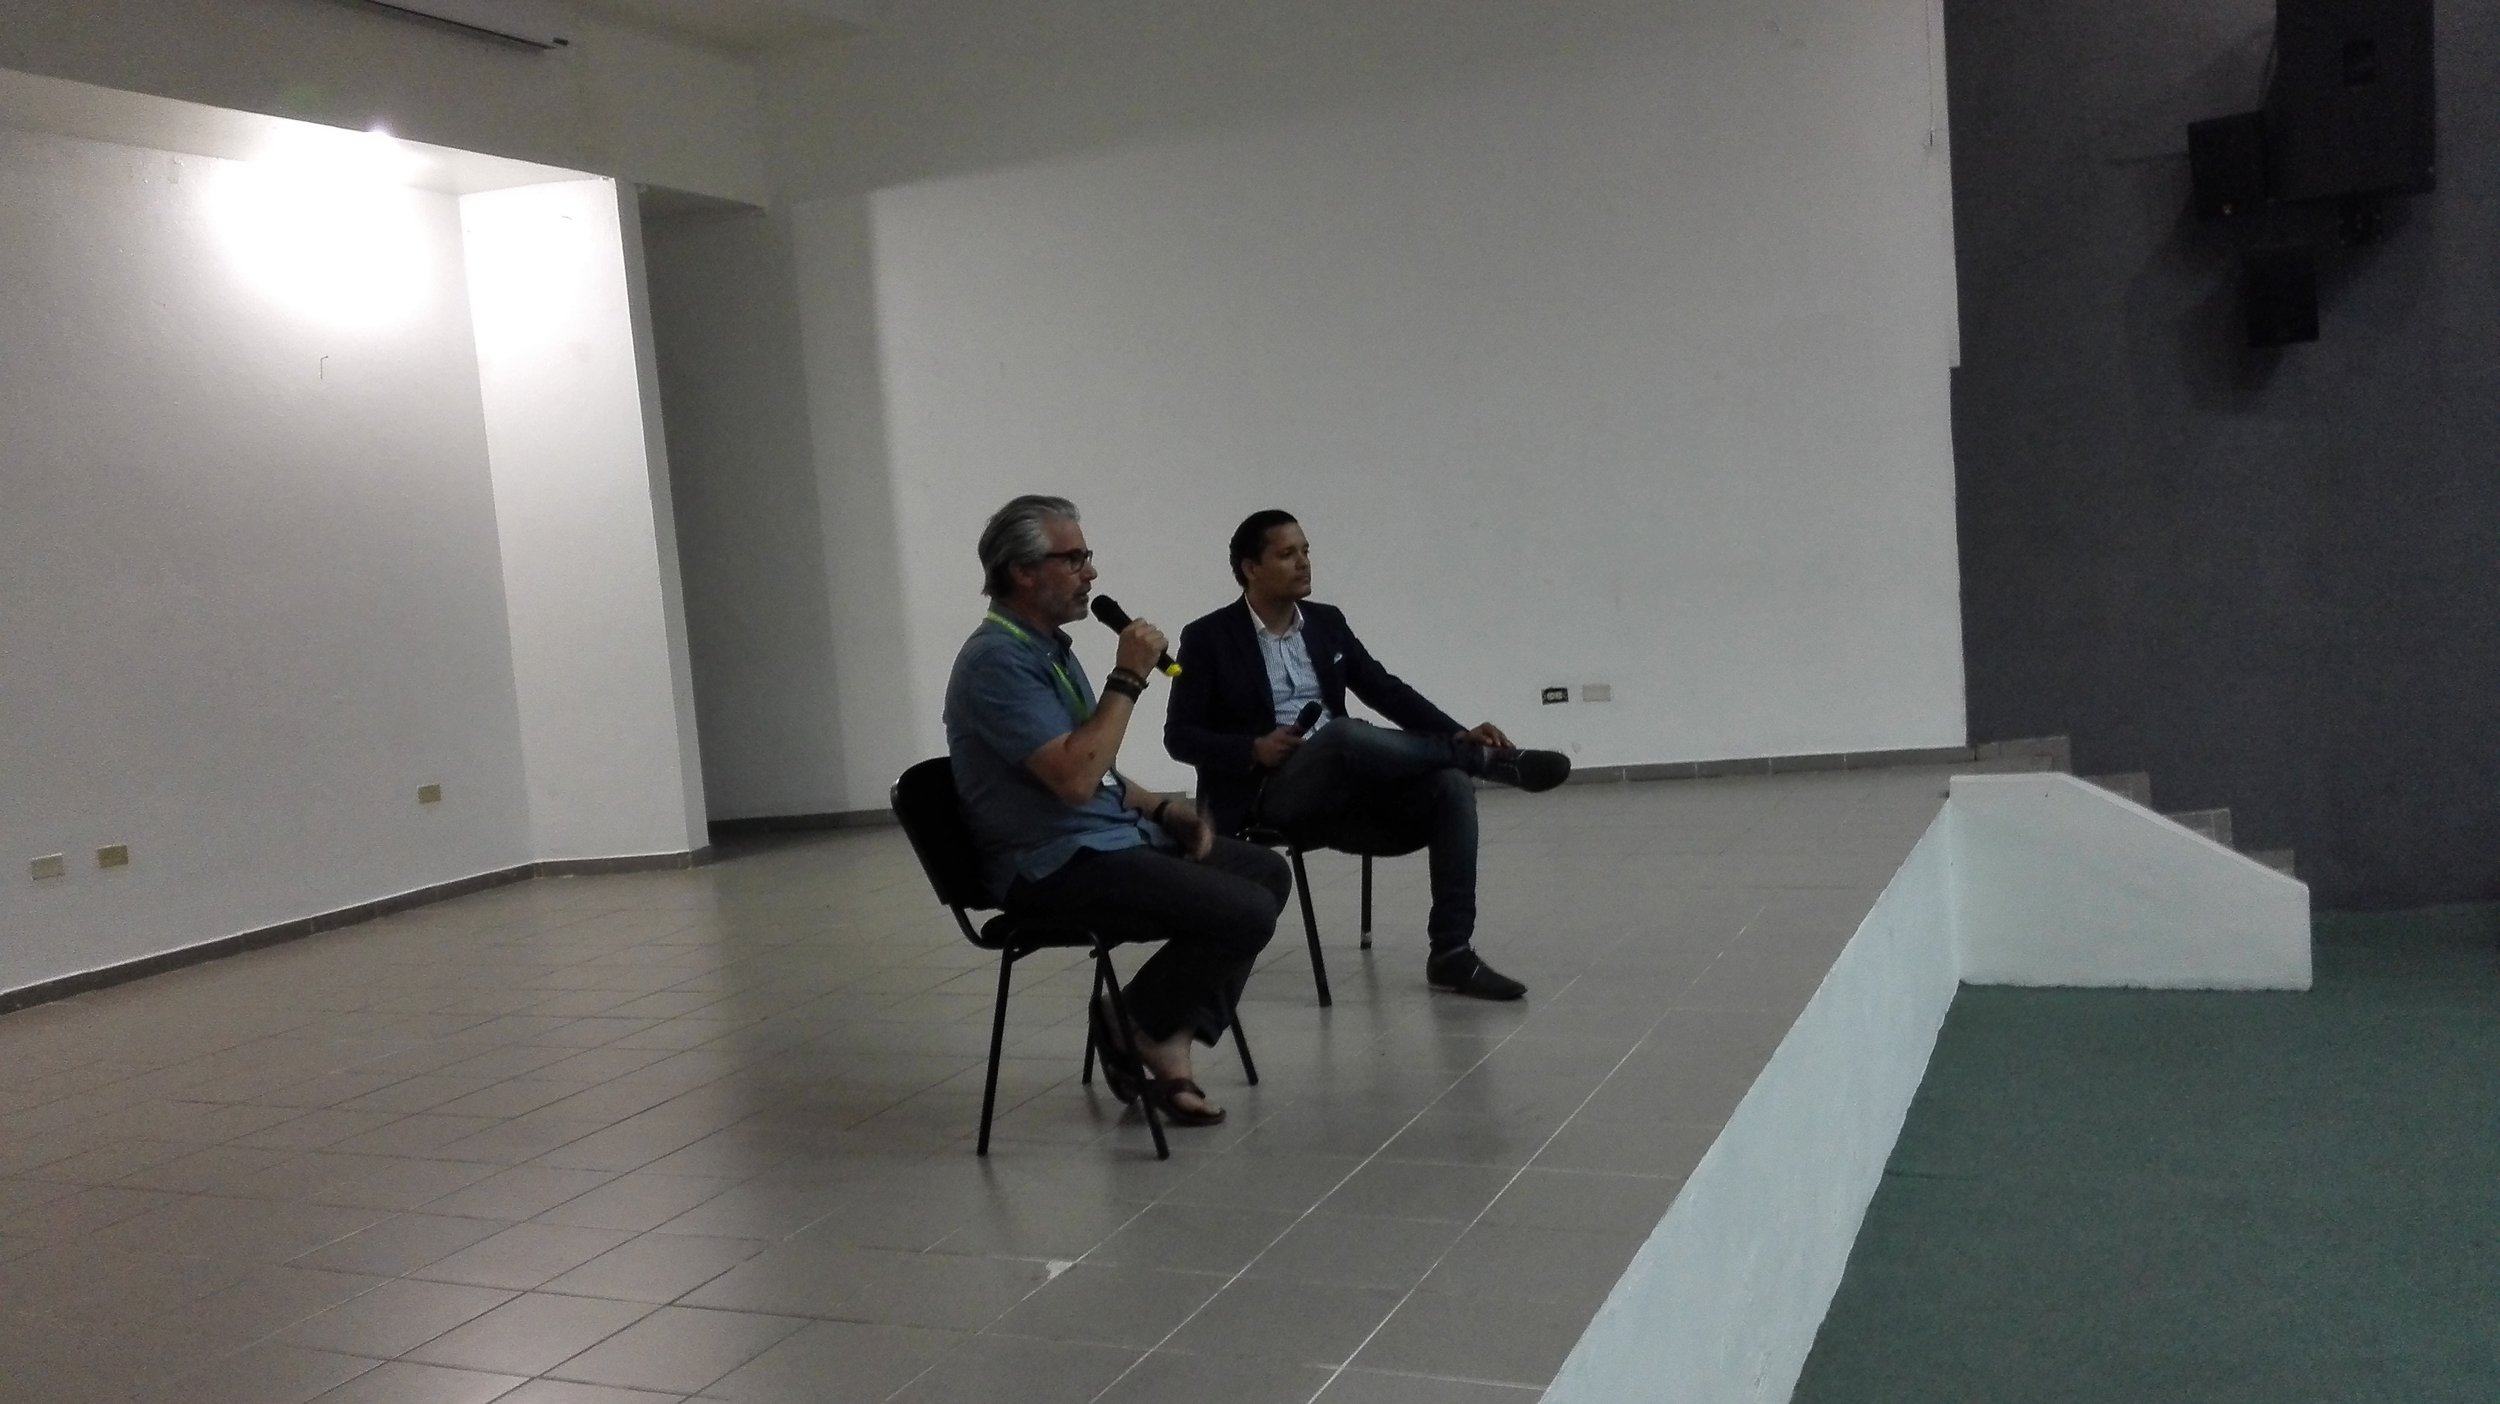 Paul Lazarus answers questions with moderator Edison Santos at Pontificia Universidad Catolica Madre Y Maestra (PUCMM) in the Dominican Republic.